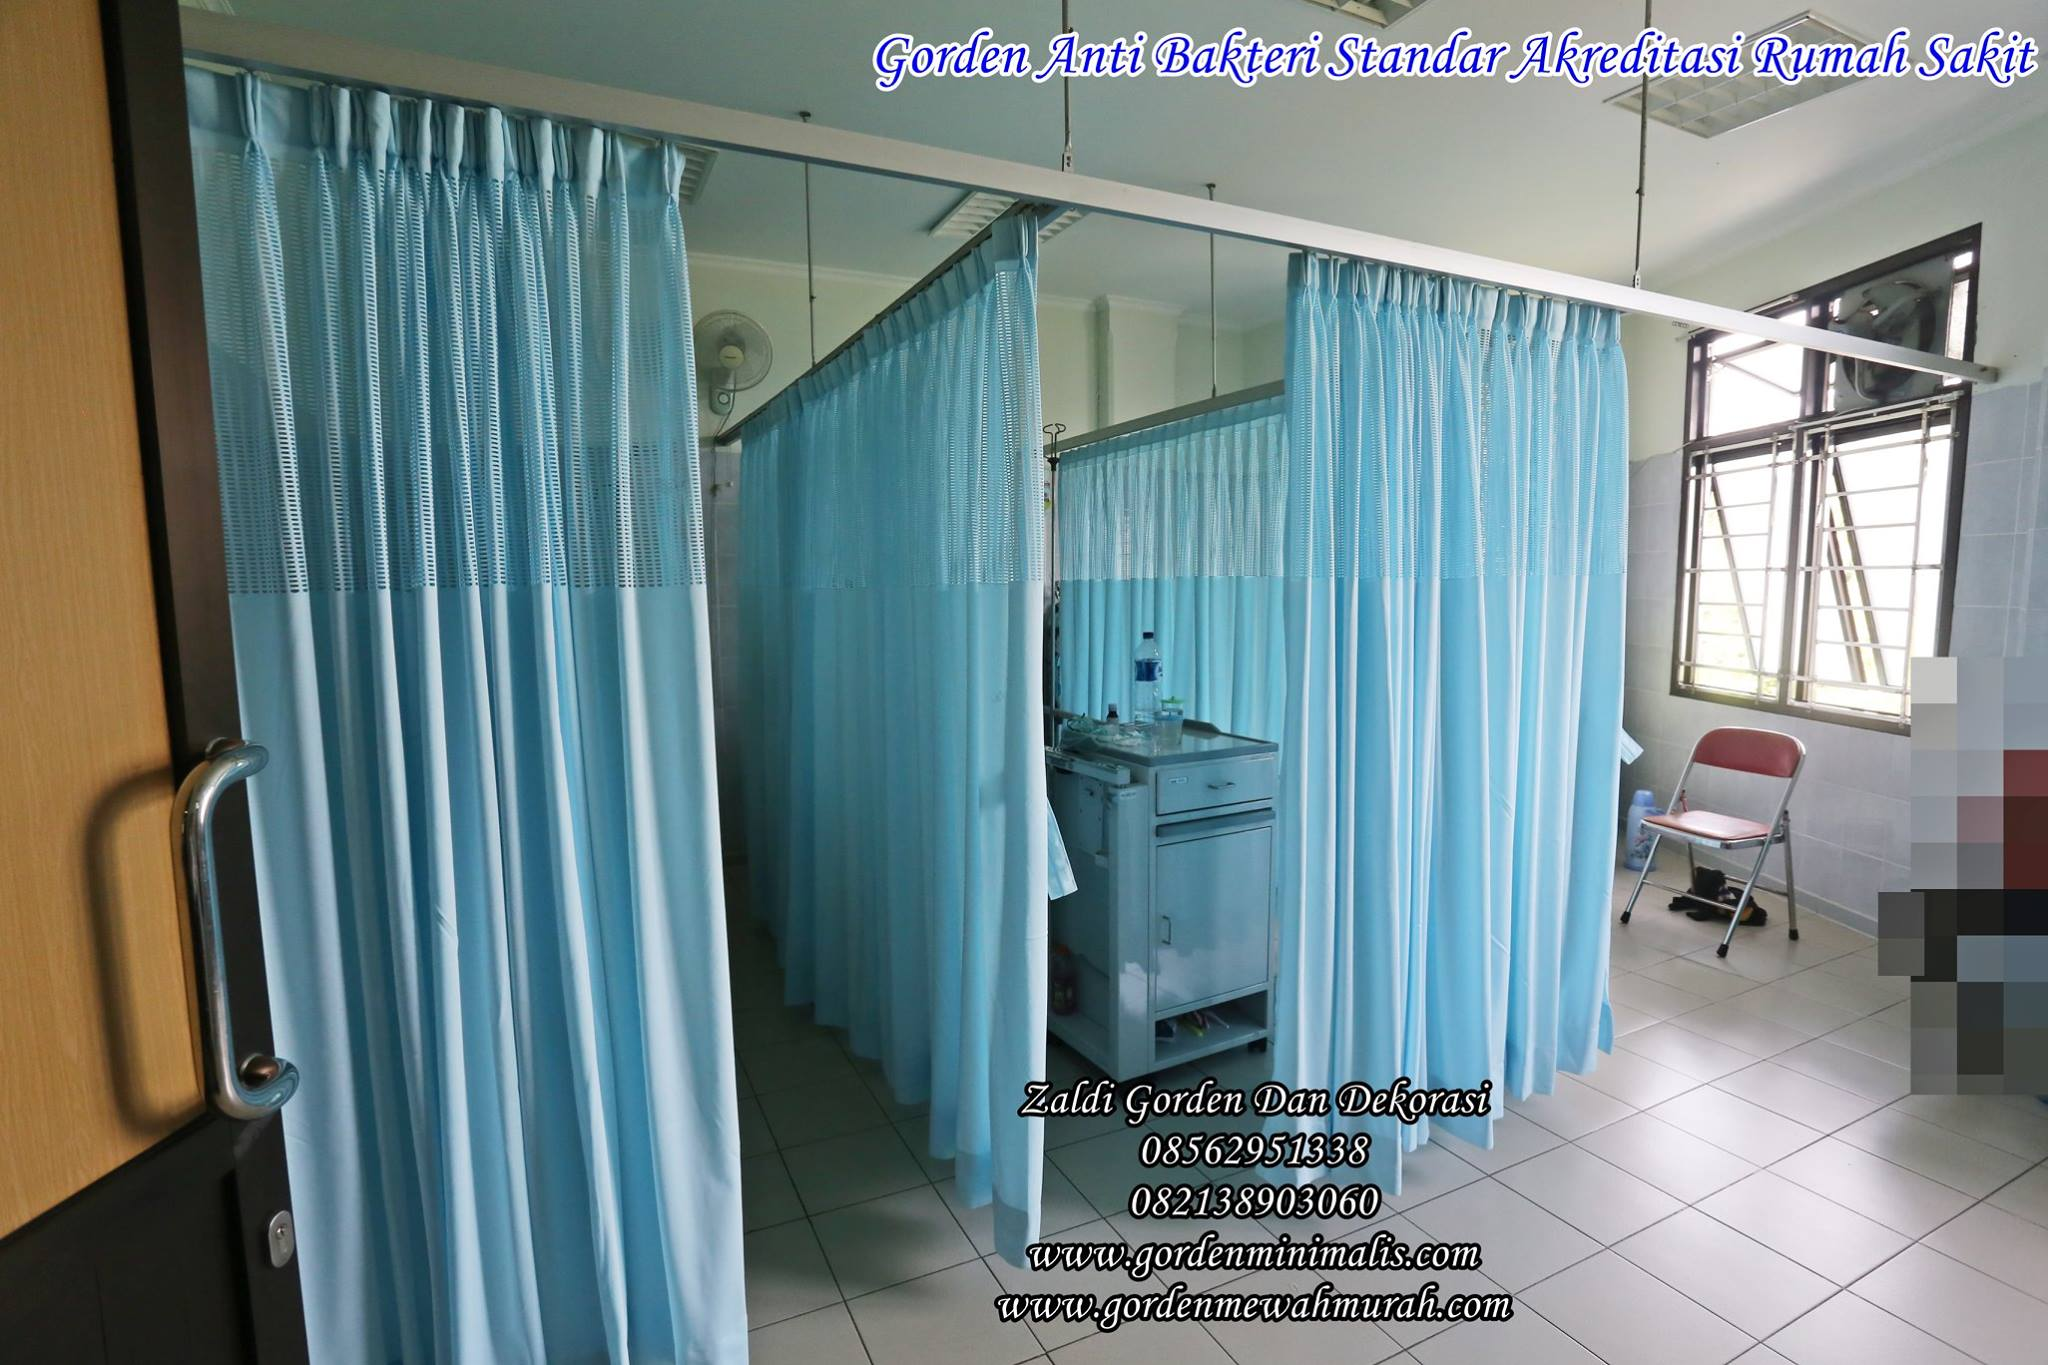 komposisi spesifikasi tehnis gorden rumah sakit bahan anti bakteri  100% polyester fibre  width 200-300 cm  weight 200-300 gr/m2  net height 55-60 cm  Fire Resistance  Type 1 fire resistance yarn, with GB20286-2006 FR standard.  Type 2 Temporary fire resistance, fabric coated with flame retardant chemicals.  Anti bacterial  24 hours protection from Staphylococcus aureus, E. coli, and Candida albicans, with 100% of  bacteria kill rate.  Fabric shrink rate  FZ/T72004.2-2000 standard : warp -0.7%, weft -0.8%  CNS8038A standard : no shrink  Color fastness  GB/T3921.3-1997 : discolor grade 4, after-wash grade 4, cotton dye grade 4-5  CNS1494A2 : color fade grade 5  Tear strength  FZ/T72004.2-2000 test : tear strength 775N  CNS12915 test : tear strength 20 kgf/cm2  Tensile strength  CNS12915 : warp 46.8 kgf/5 cm, weft 127 kgf/5 cm  pH value  According to China National general safety technical code for textile products GB18401-2003,  pH 6.80/  Formaldehyde content  According to GB/T2912.1-1998, contains 20 mg/kg.  Aromatic amines test  According to GB18401-2003, no carcinogens found.  Note:  Washing method : wash with 60°C disinfectant to kill germs.